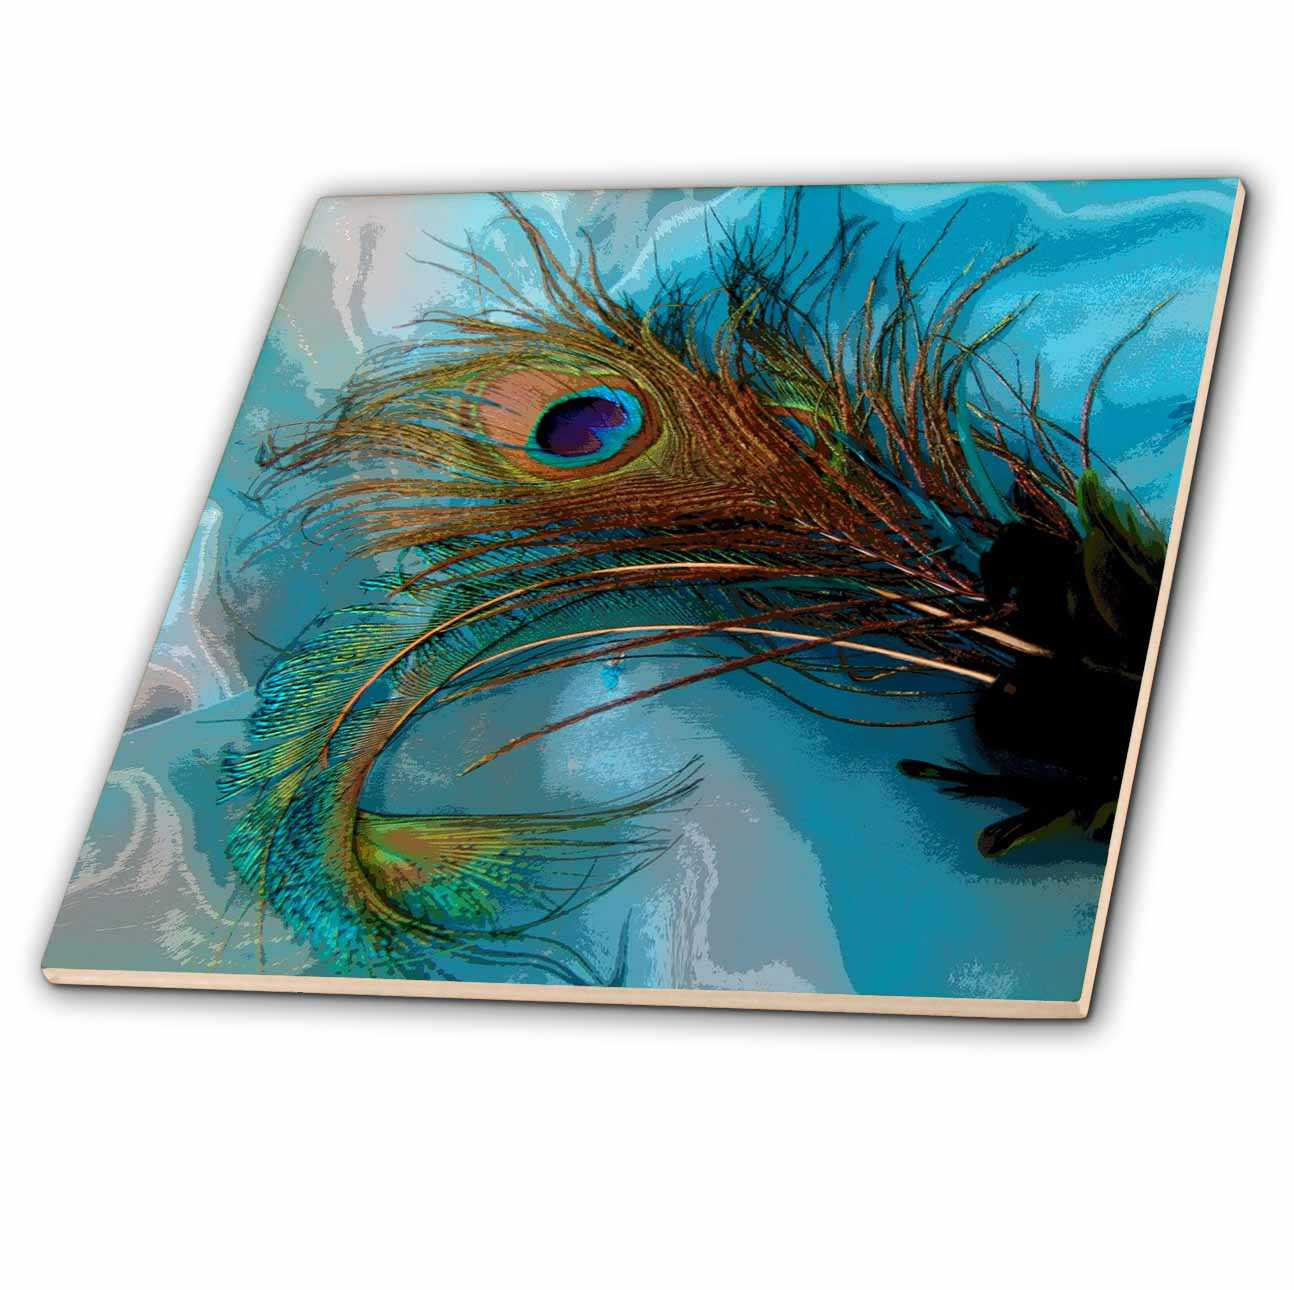 3dRose Abstract Peacock Feather II - Ceramic Tile, 8-inch